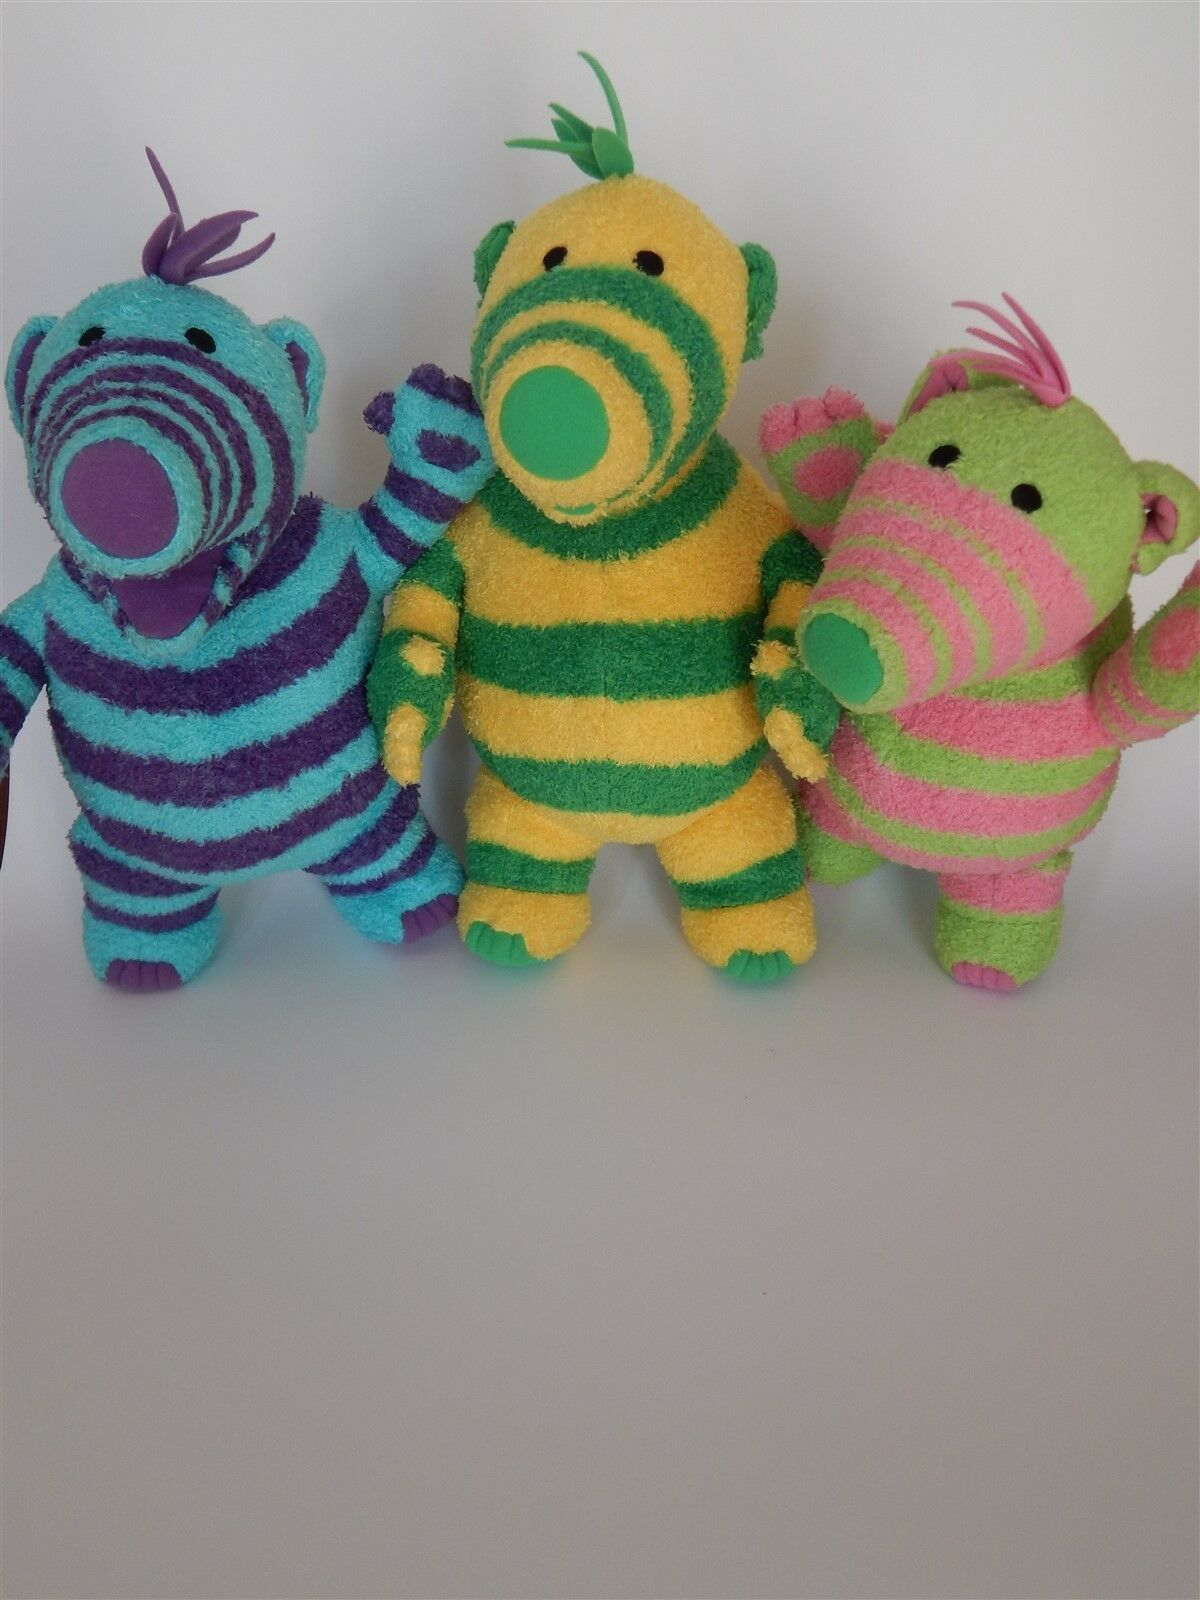 Fimbles soft toy bundle - Fimbo, Florrie and Baby - Fisher Price 2002